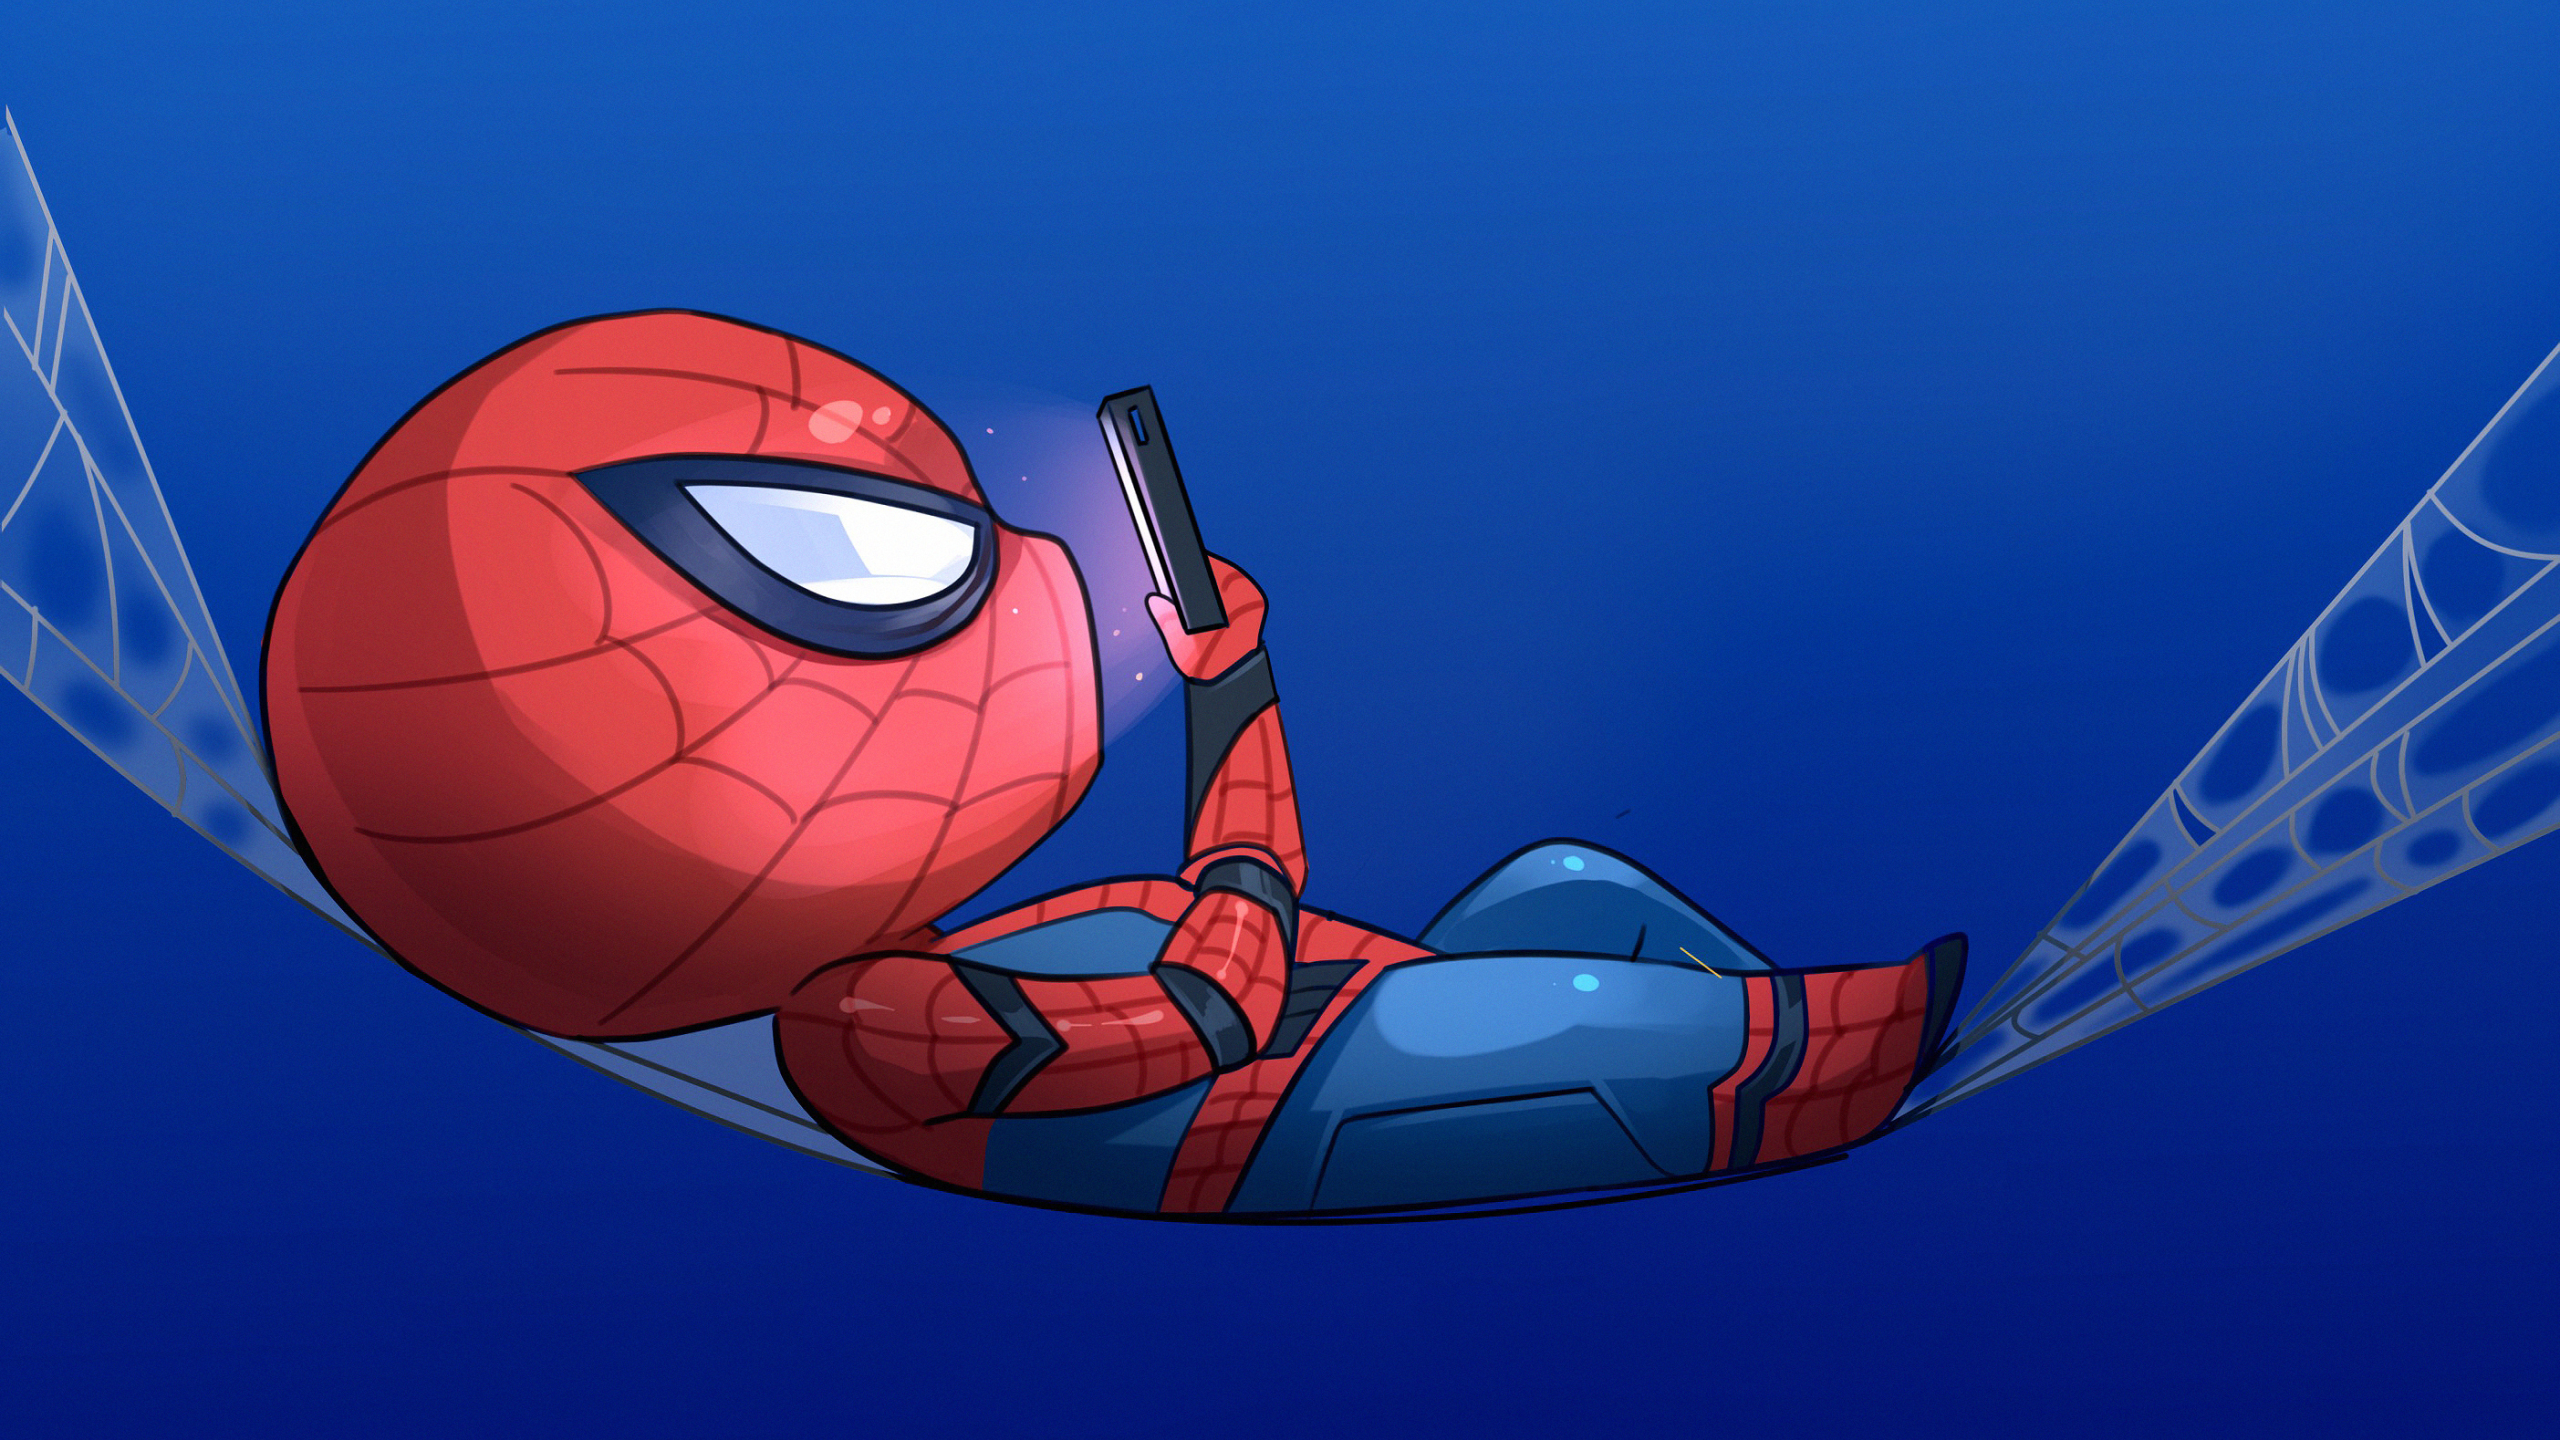 2560x1440 Small Spiderman 1440P Resolution Wallpaper, HD Superheroes 4K Wallpapers, Images